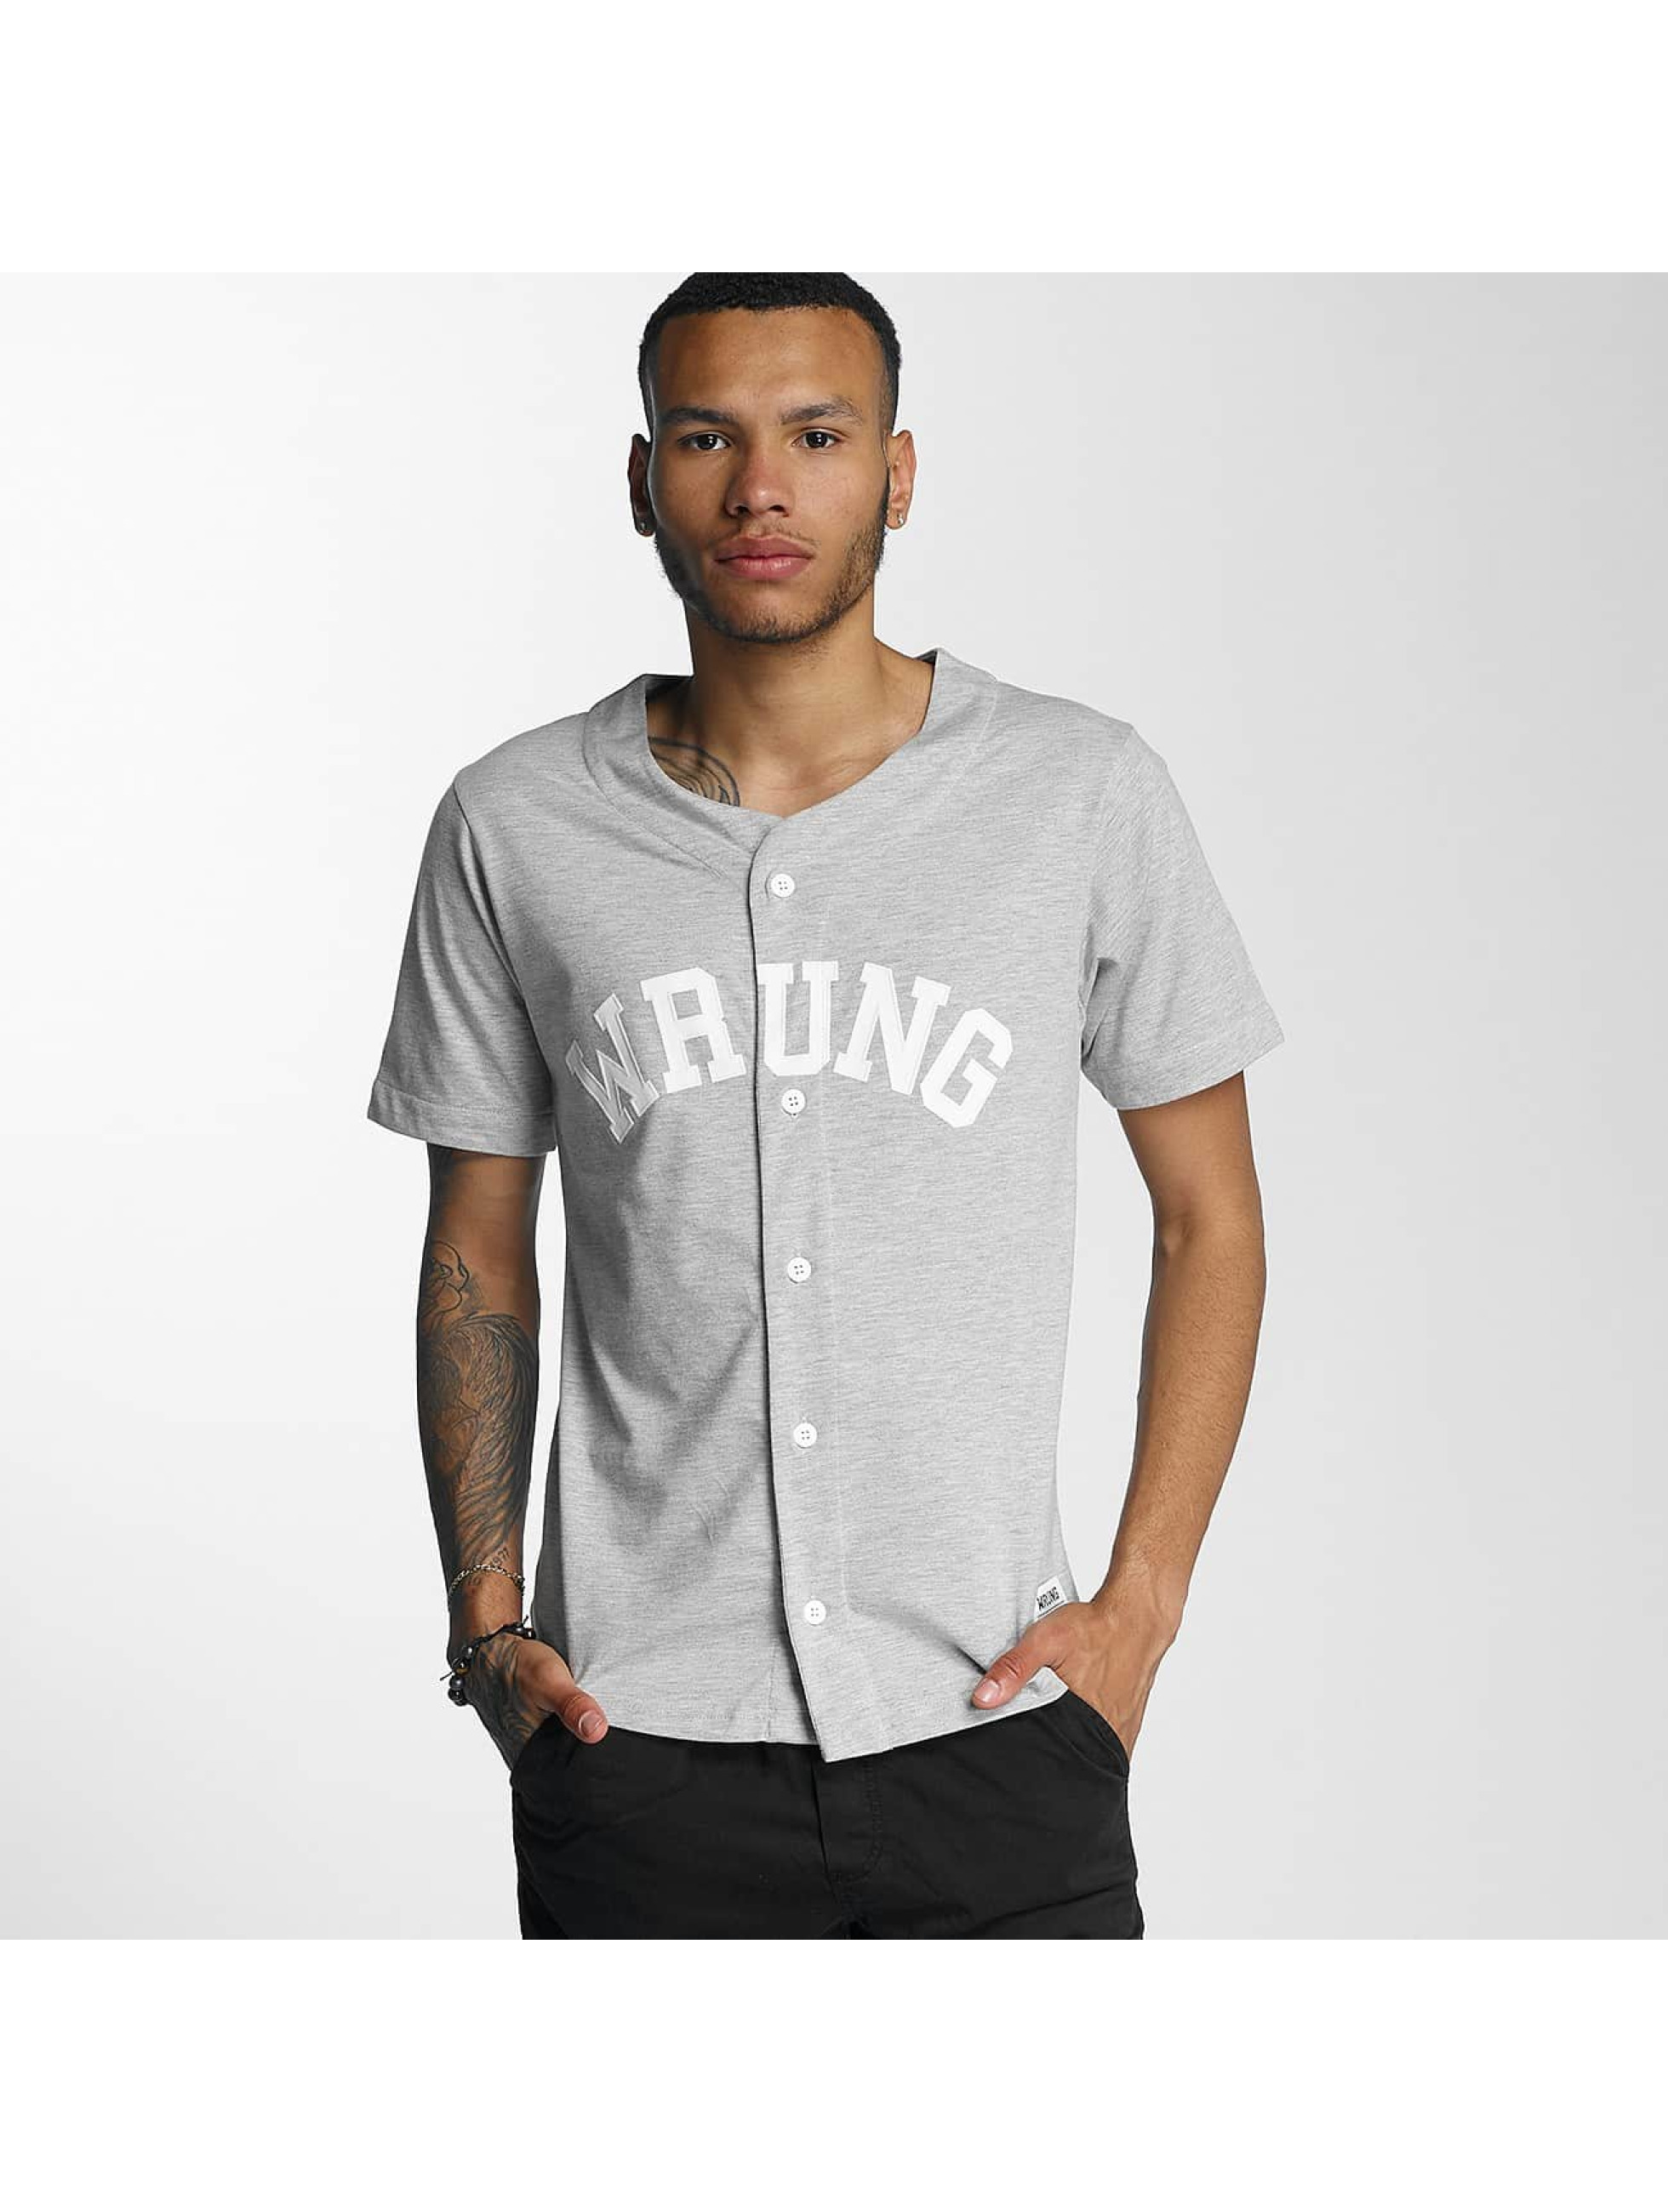 Wrung Division Shirt Hitman Baseball grey